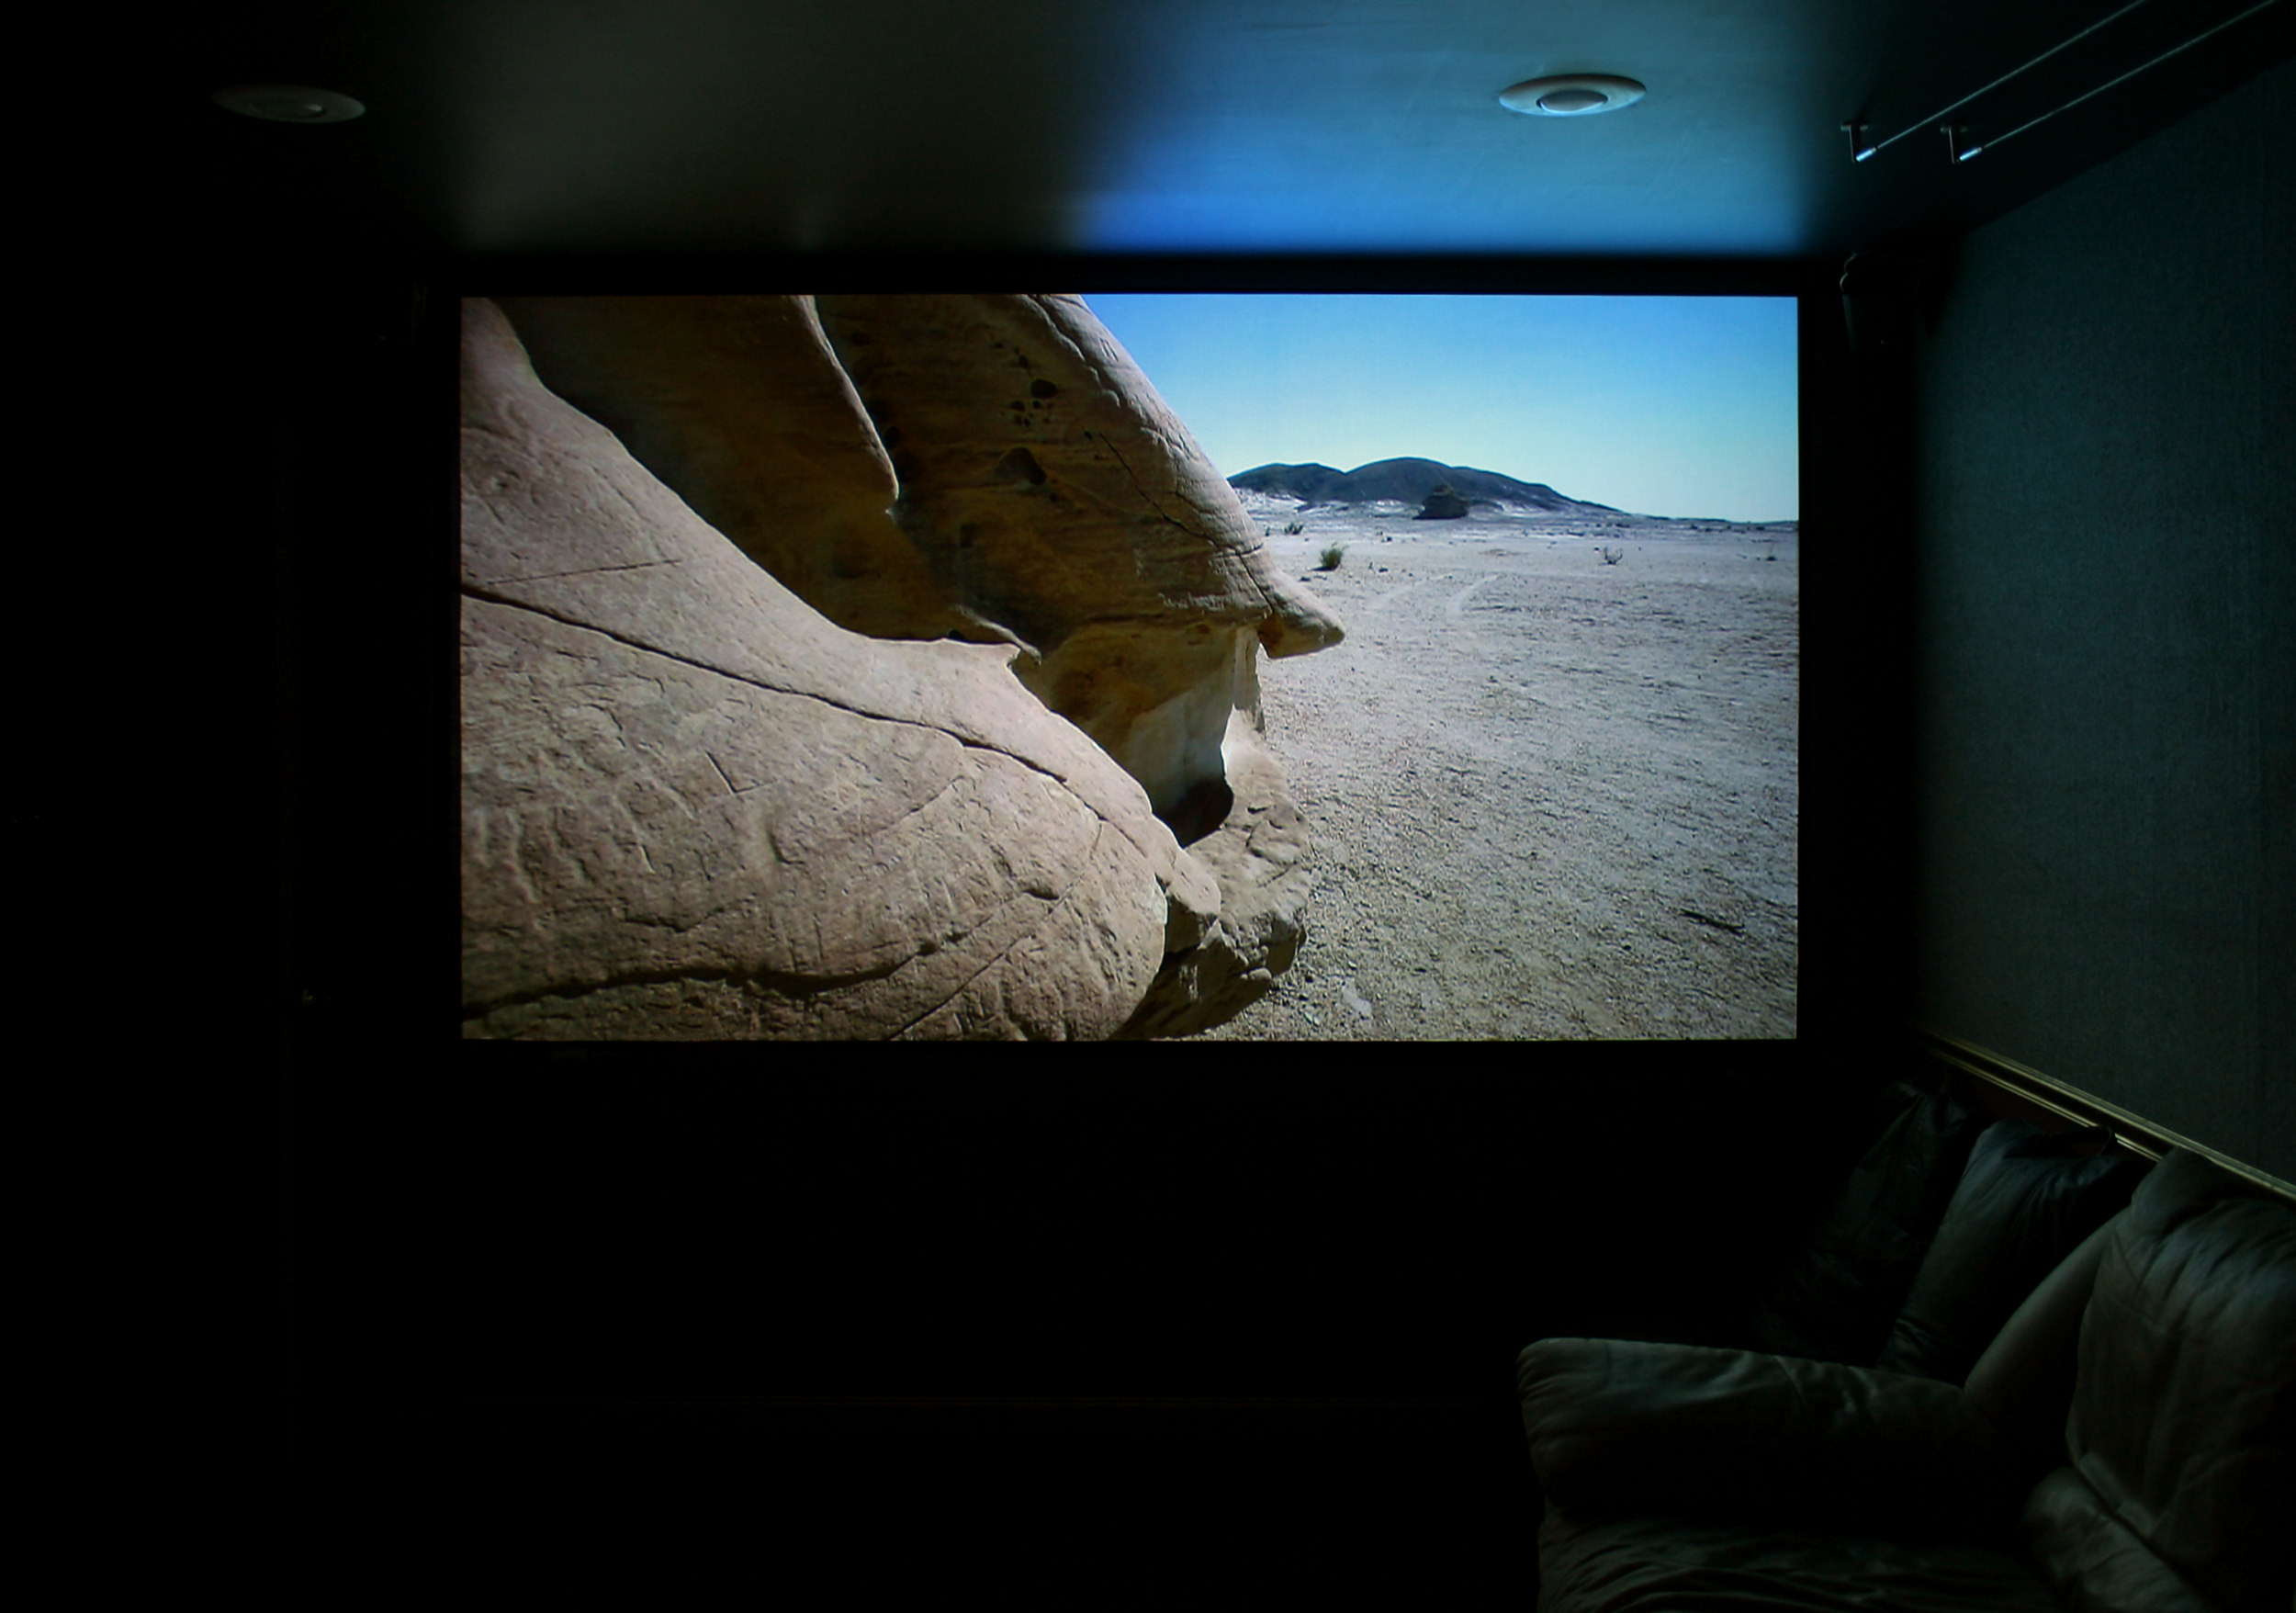 projection-screen-home2.jpg